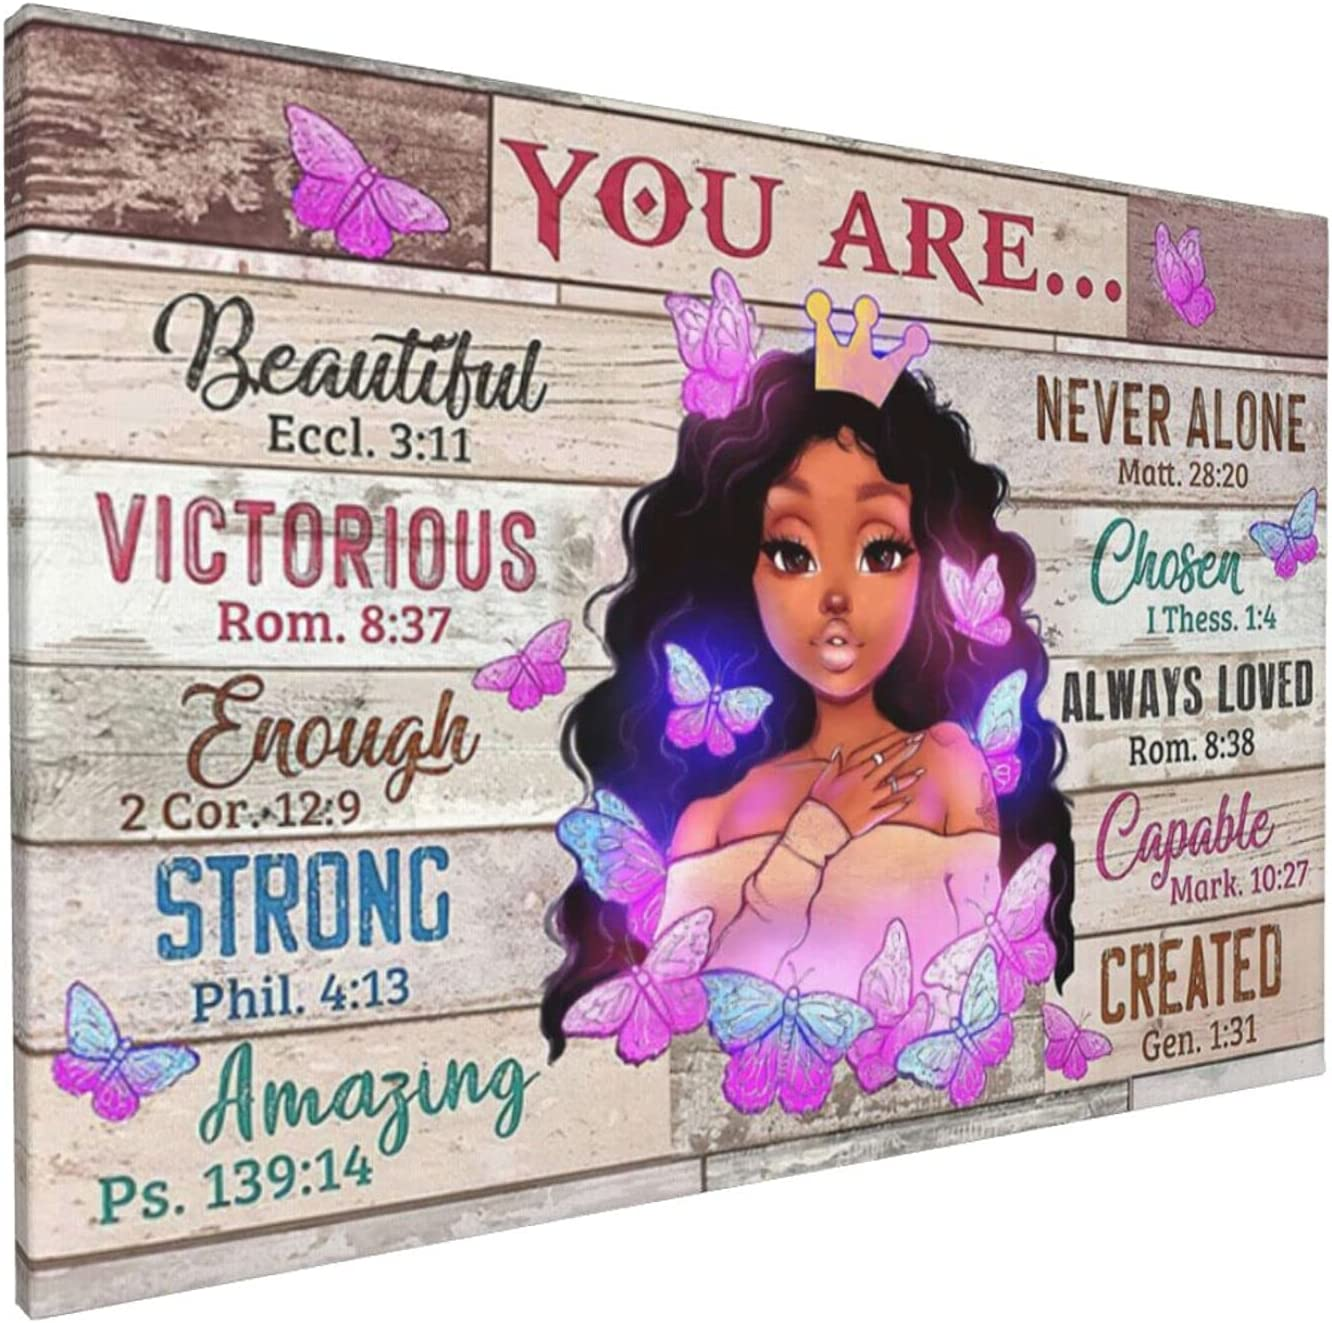 African American Wall Art Black Queen Girl Canvas Print Wall Art Motivational With Black Woman Painting Wall Decor Modern Artwork Home Decoration For Living Room Bedroom Bathroom Office Ready To Hang